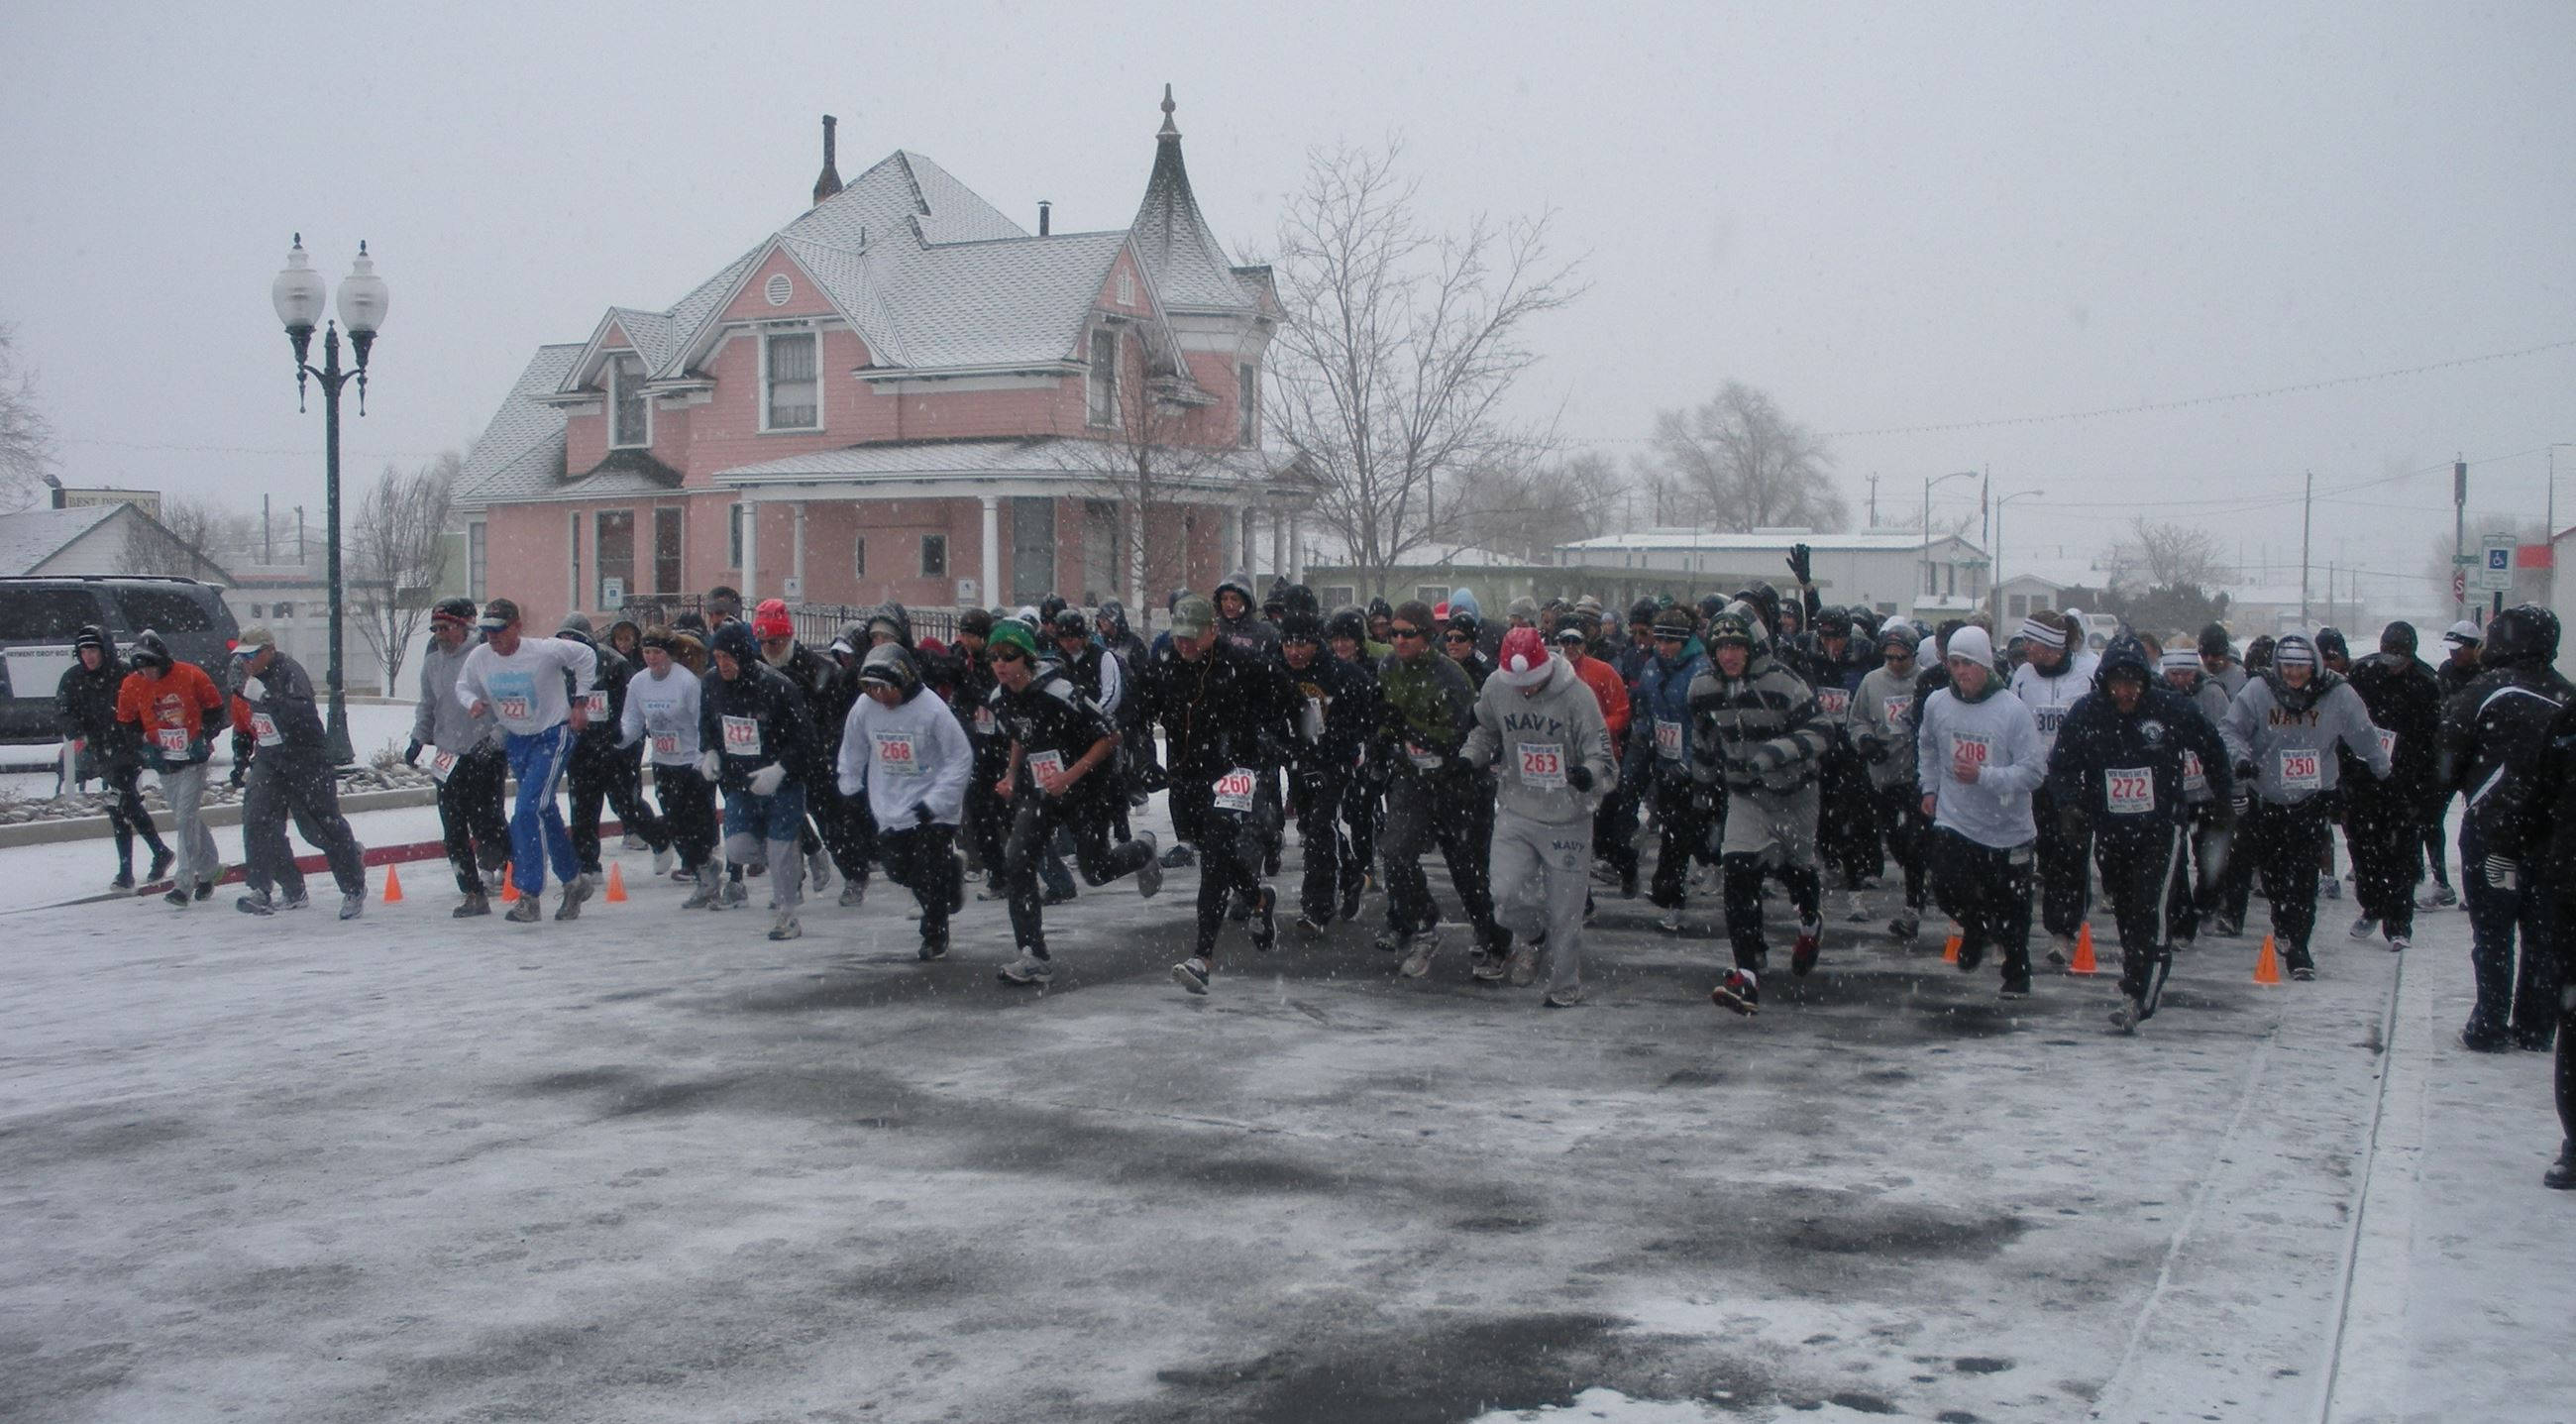 Race start on a snowy day